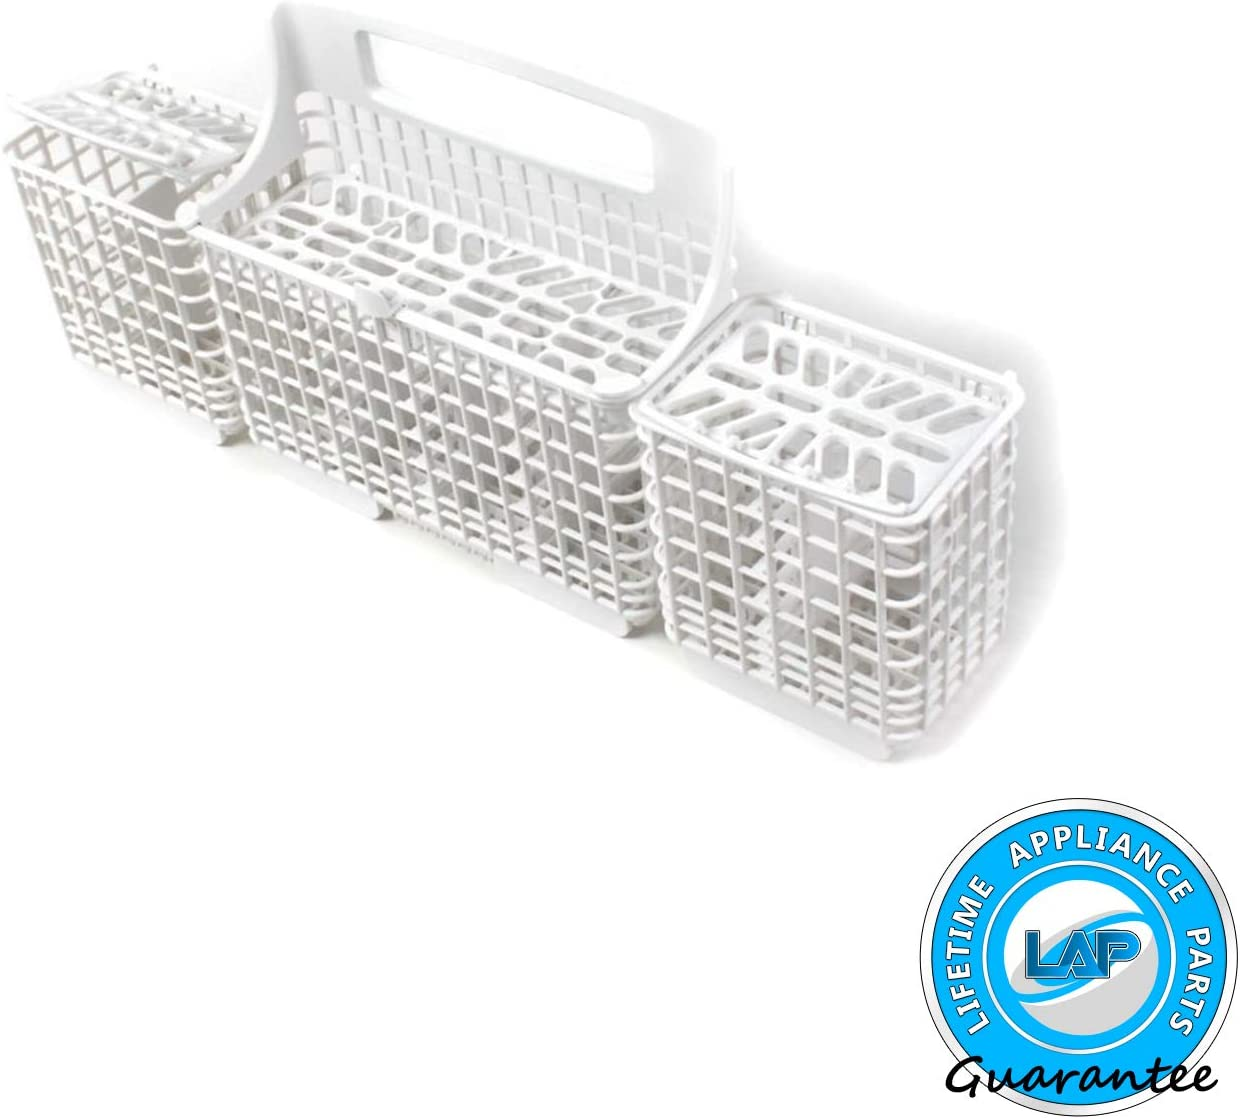 Lifetime Appliance W10807920 Silverware Basket Compatible with Whirlpool, Kenmore Dishwasher - 8562080, WP8562080, 8562086